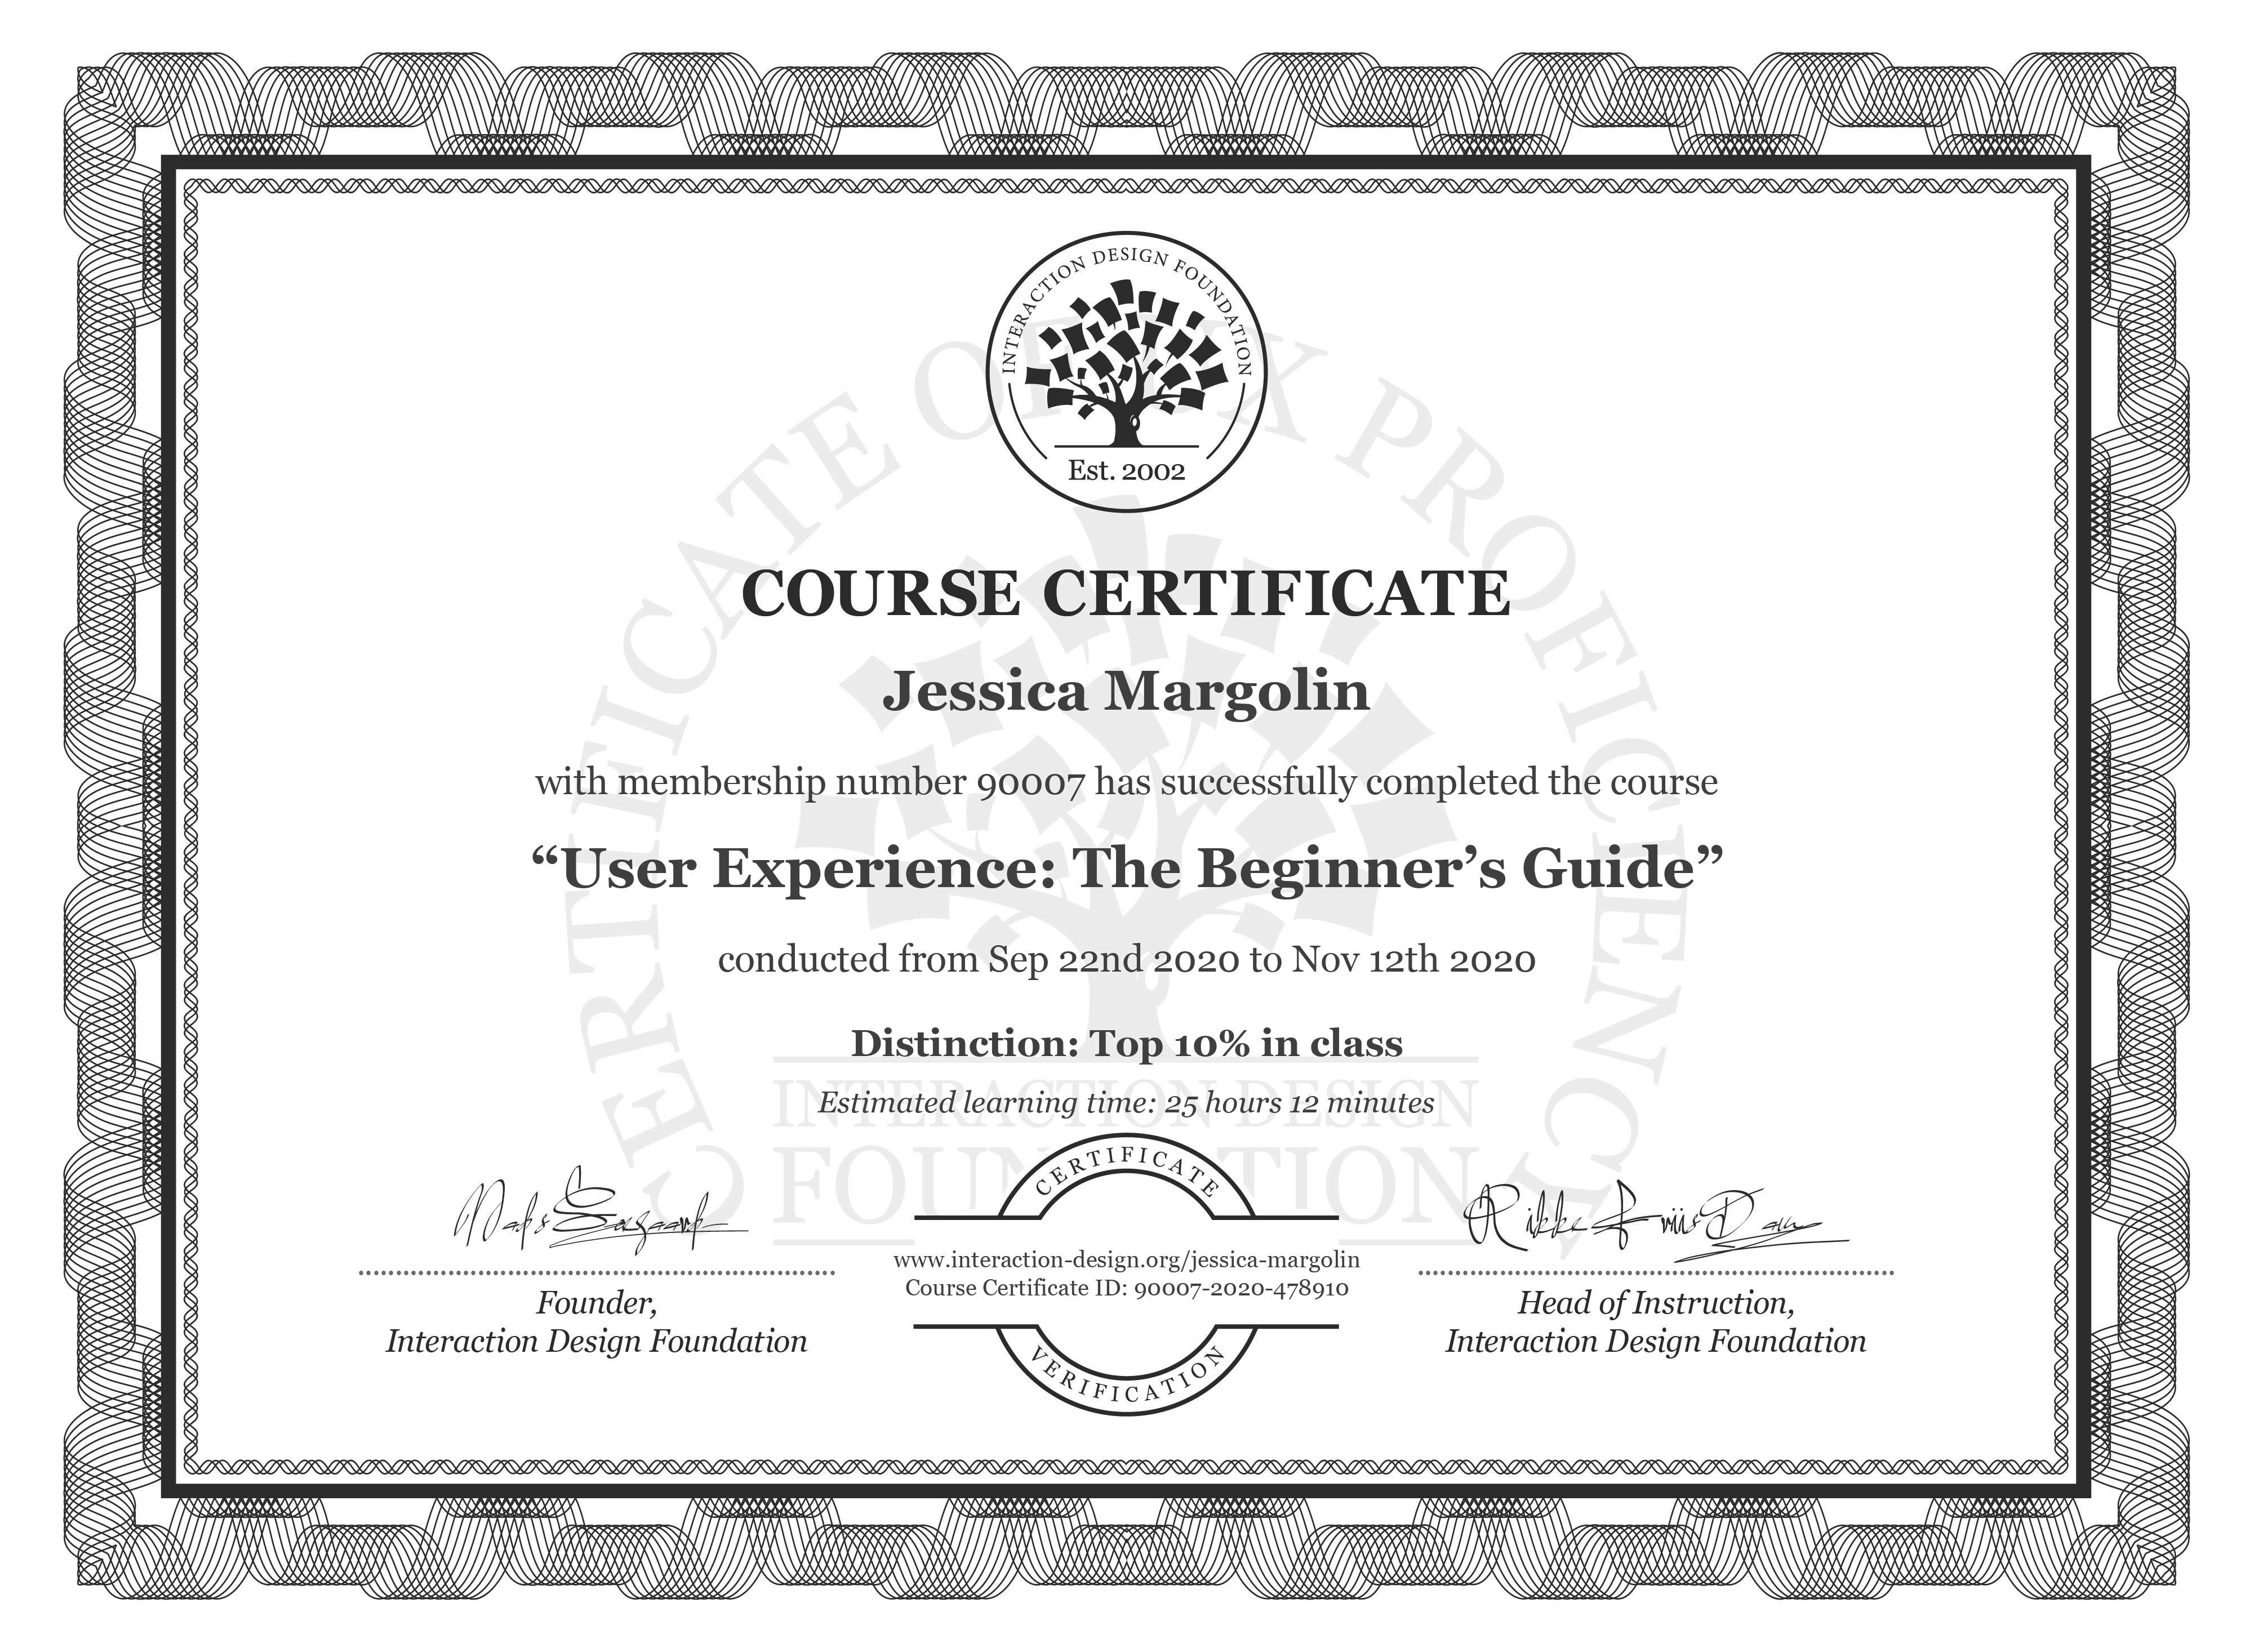 Jessica Margolin's Course Certificate: Become a UX Designer from Scratch